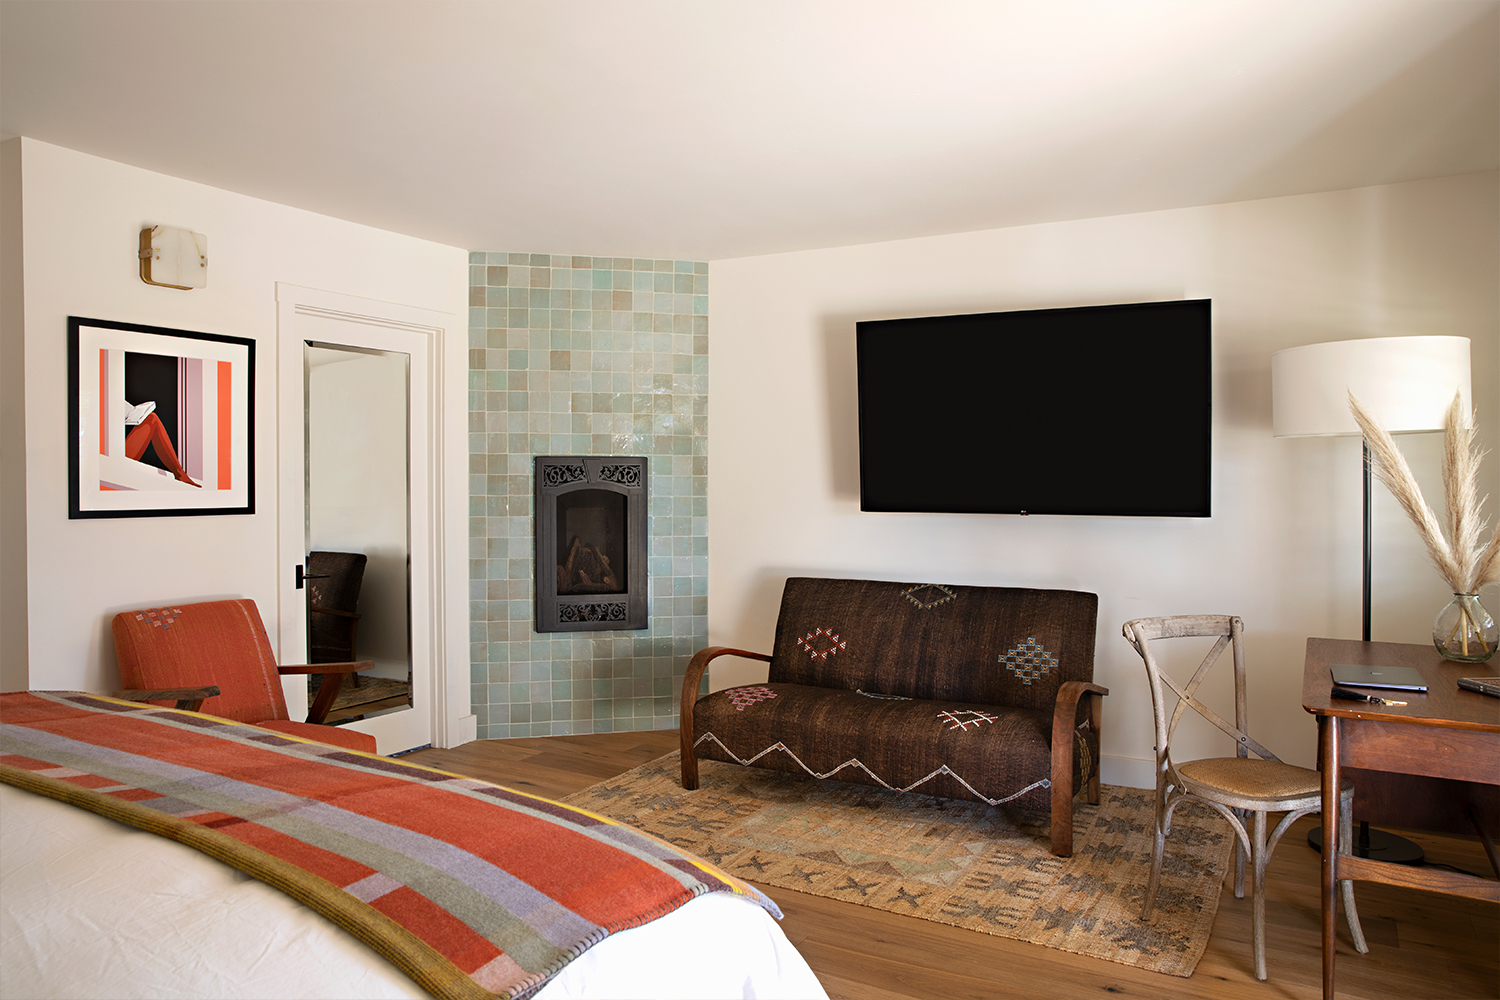 A deluxe room with a fireplace